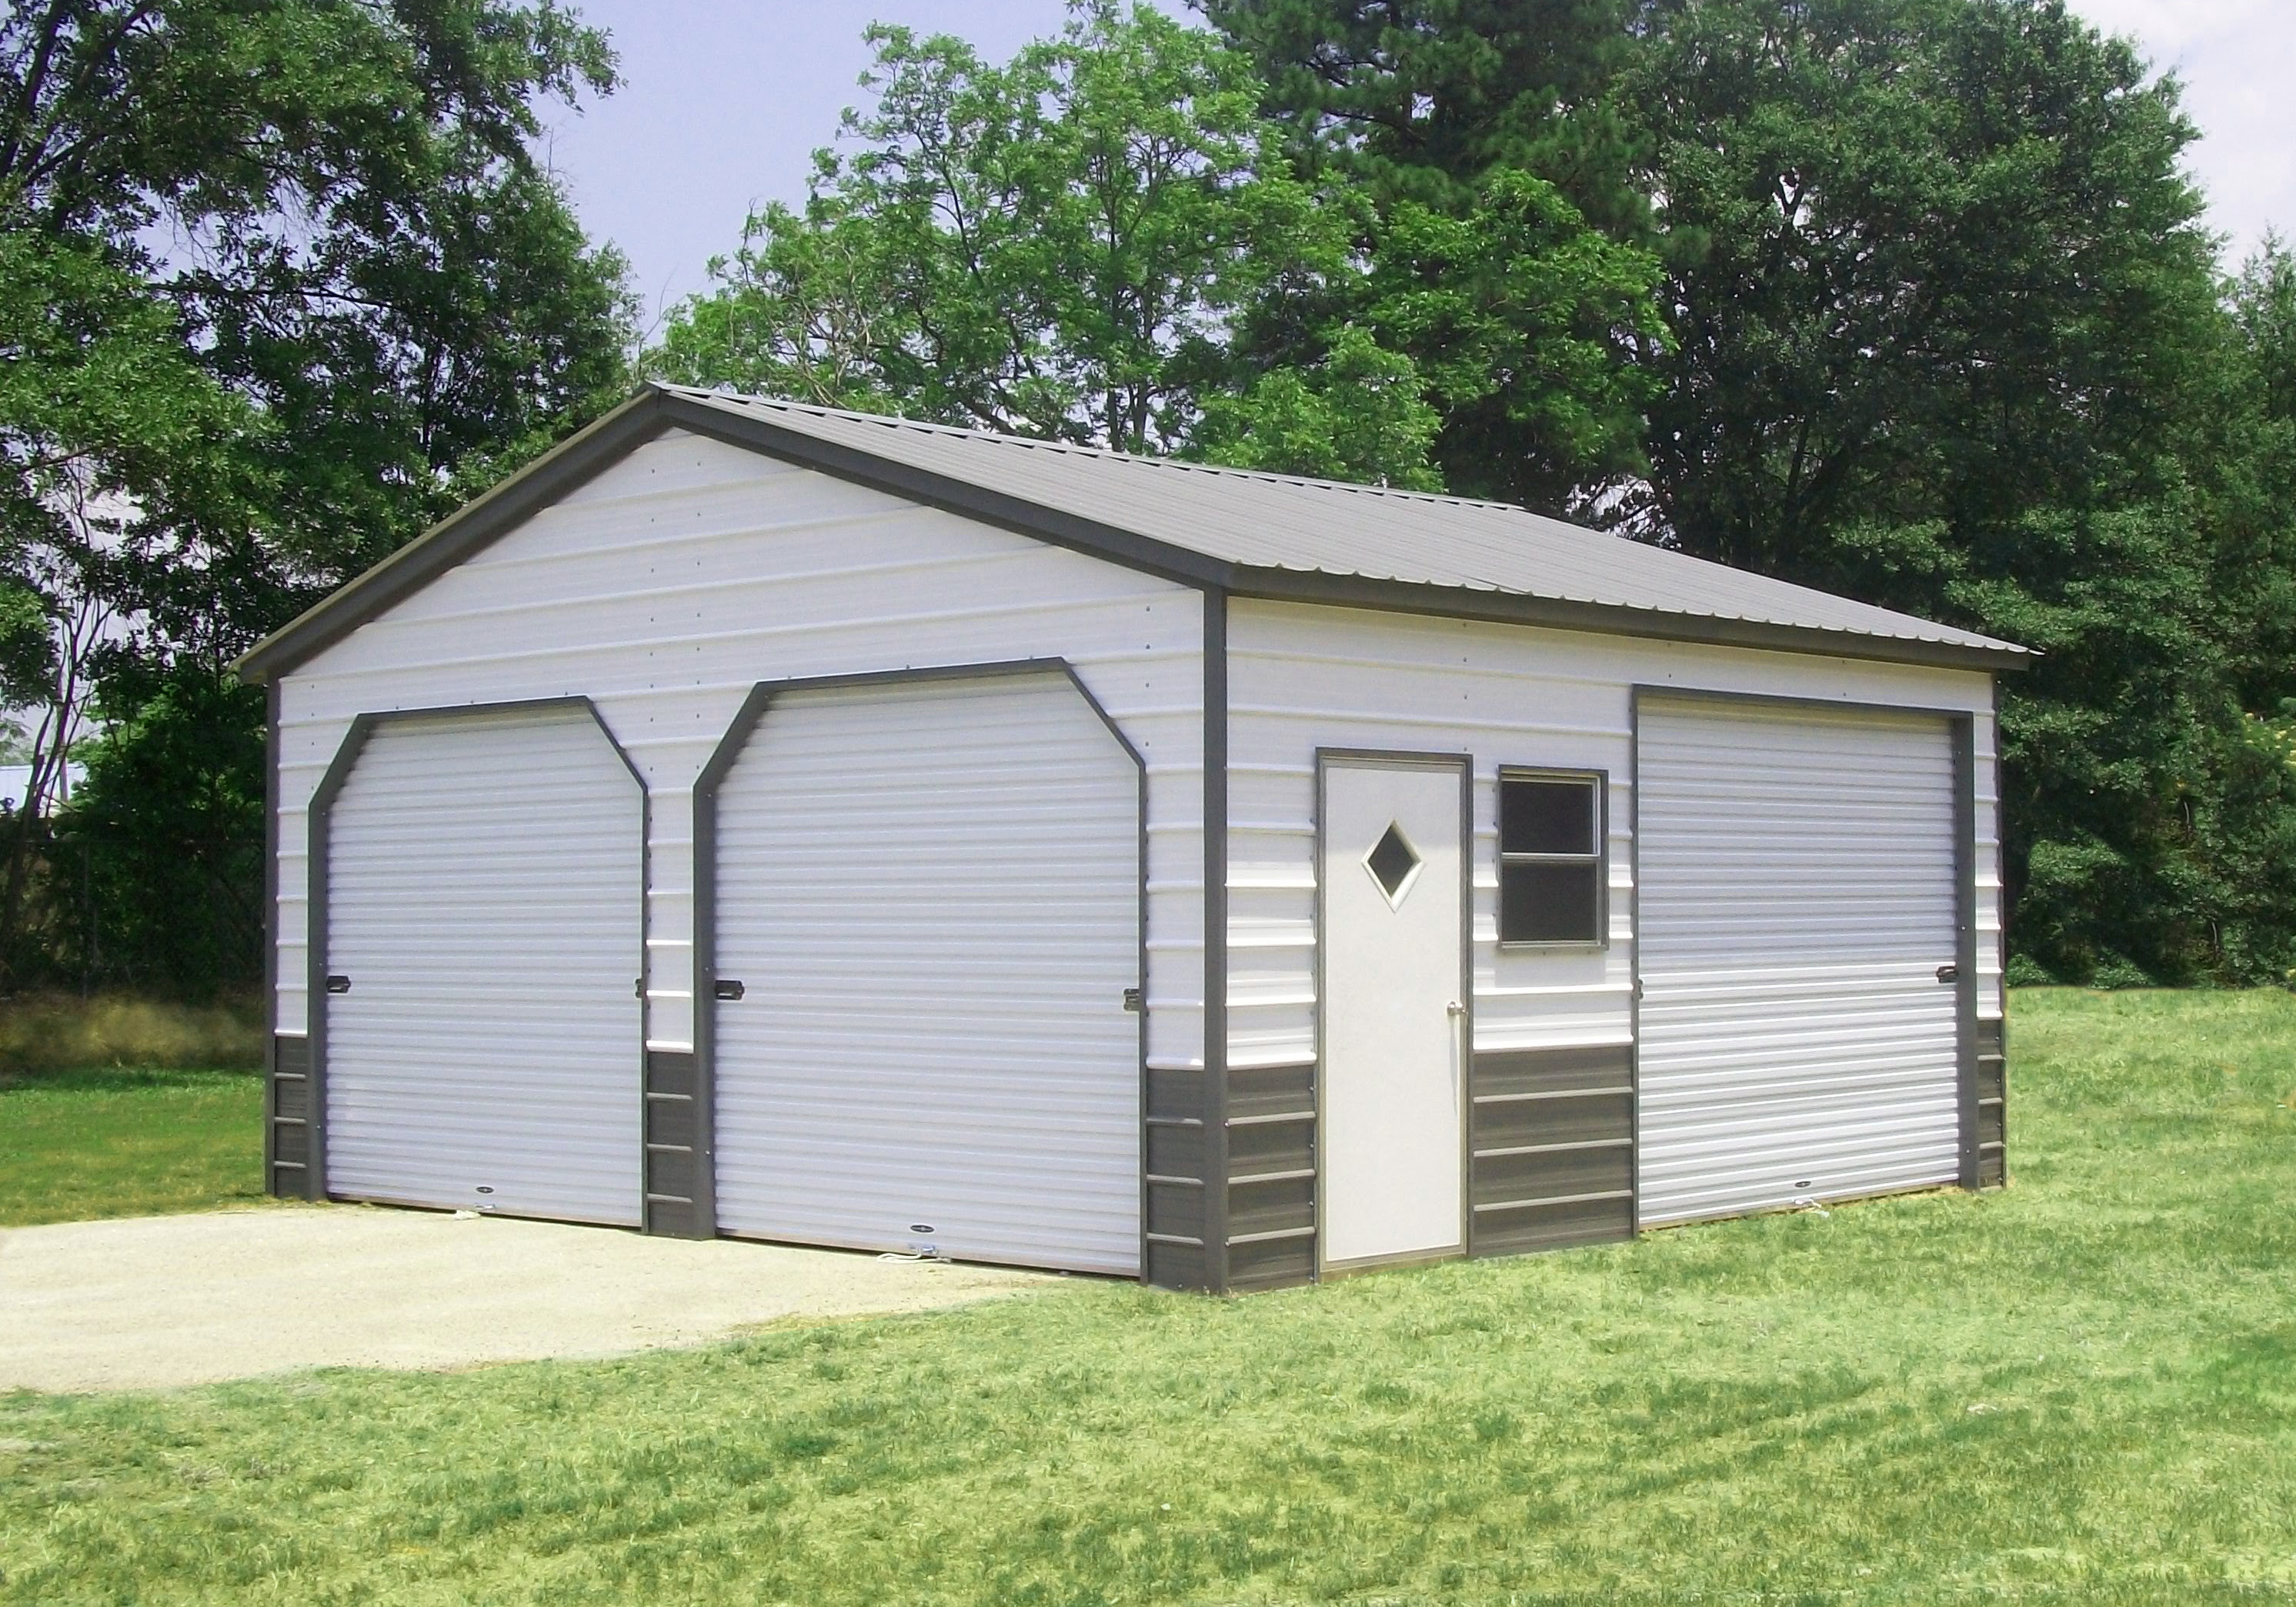 29 Southern Garages Ideas You Should Consider - Home Plans ...